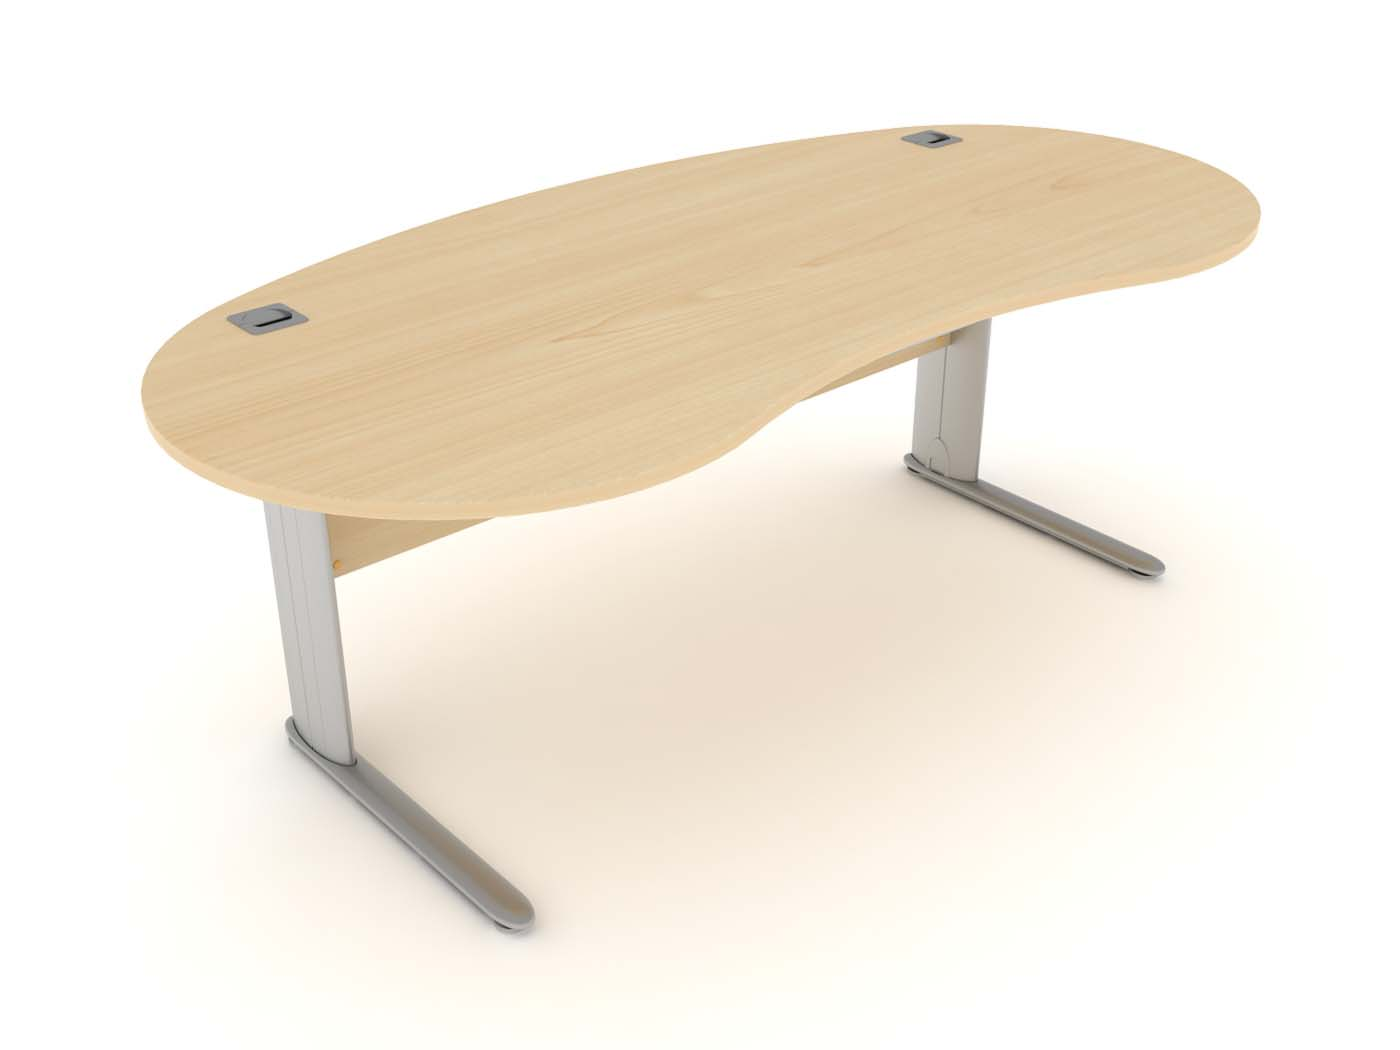 1400x1050 Kidney Bean Shaped Desk Desk Design